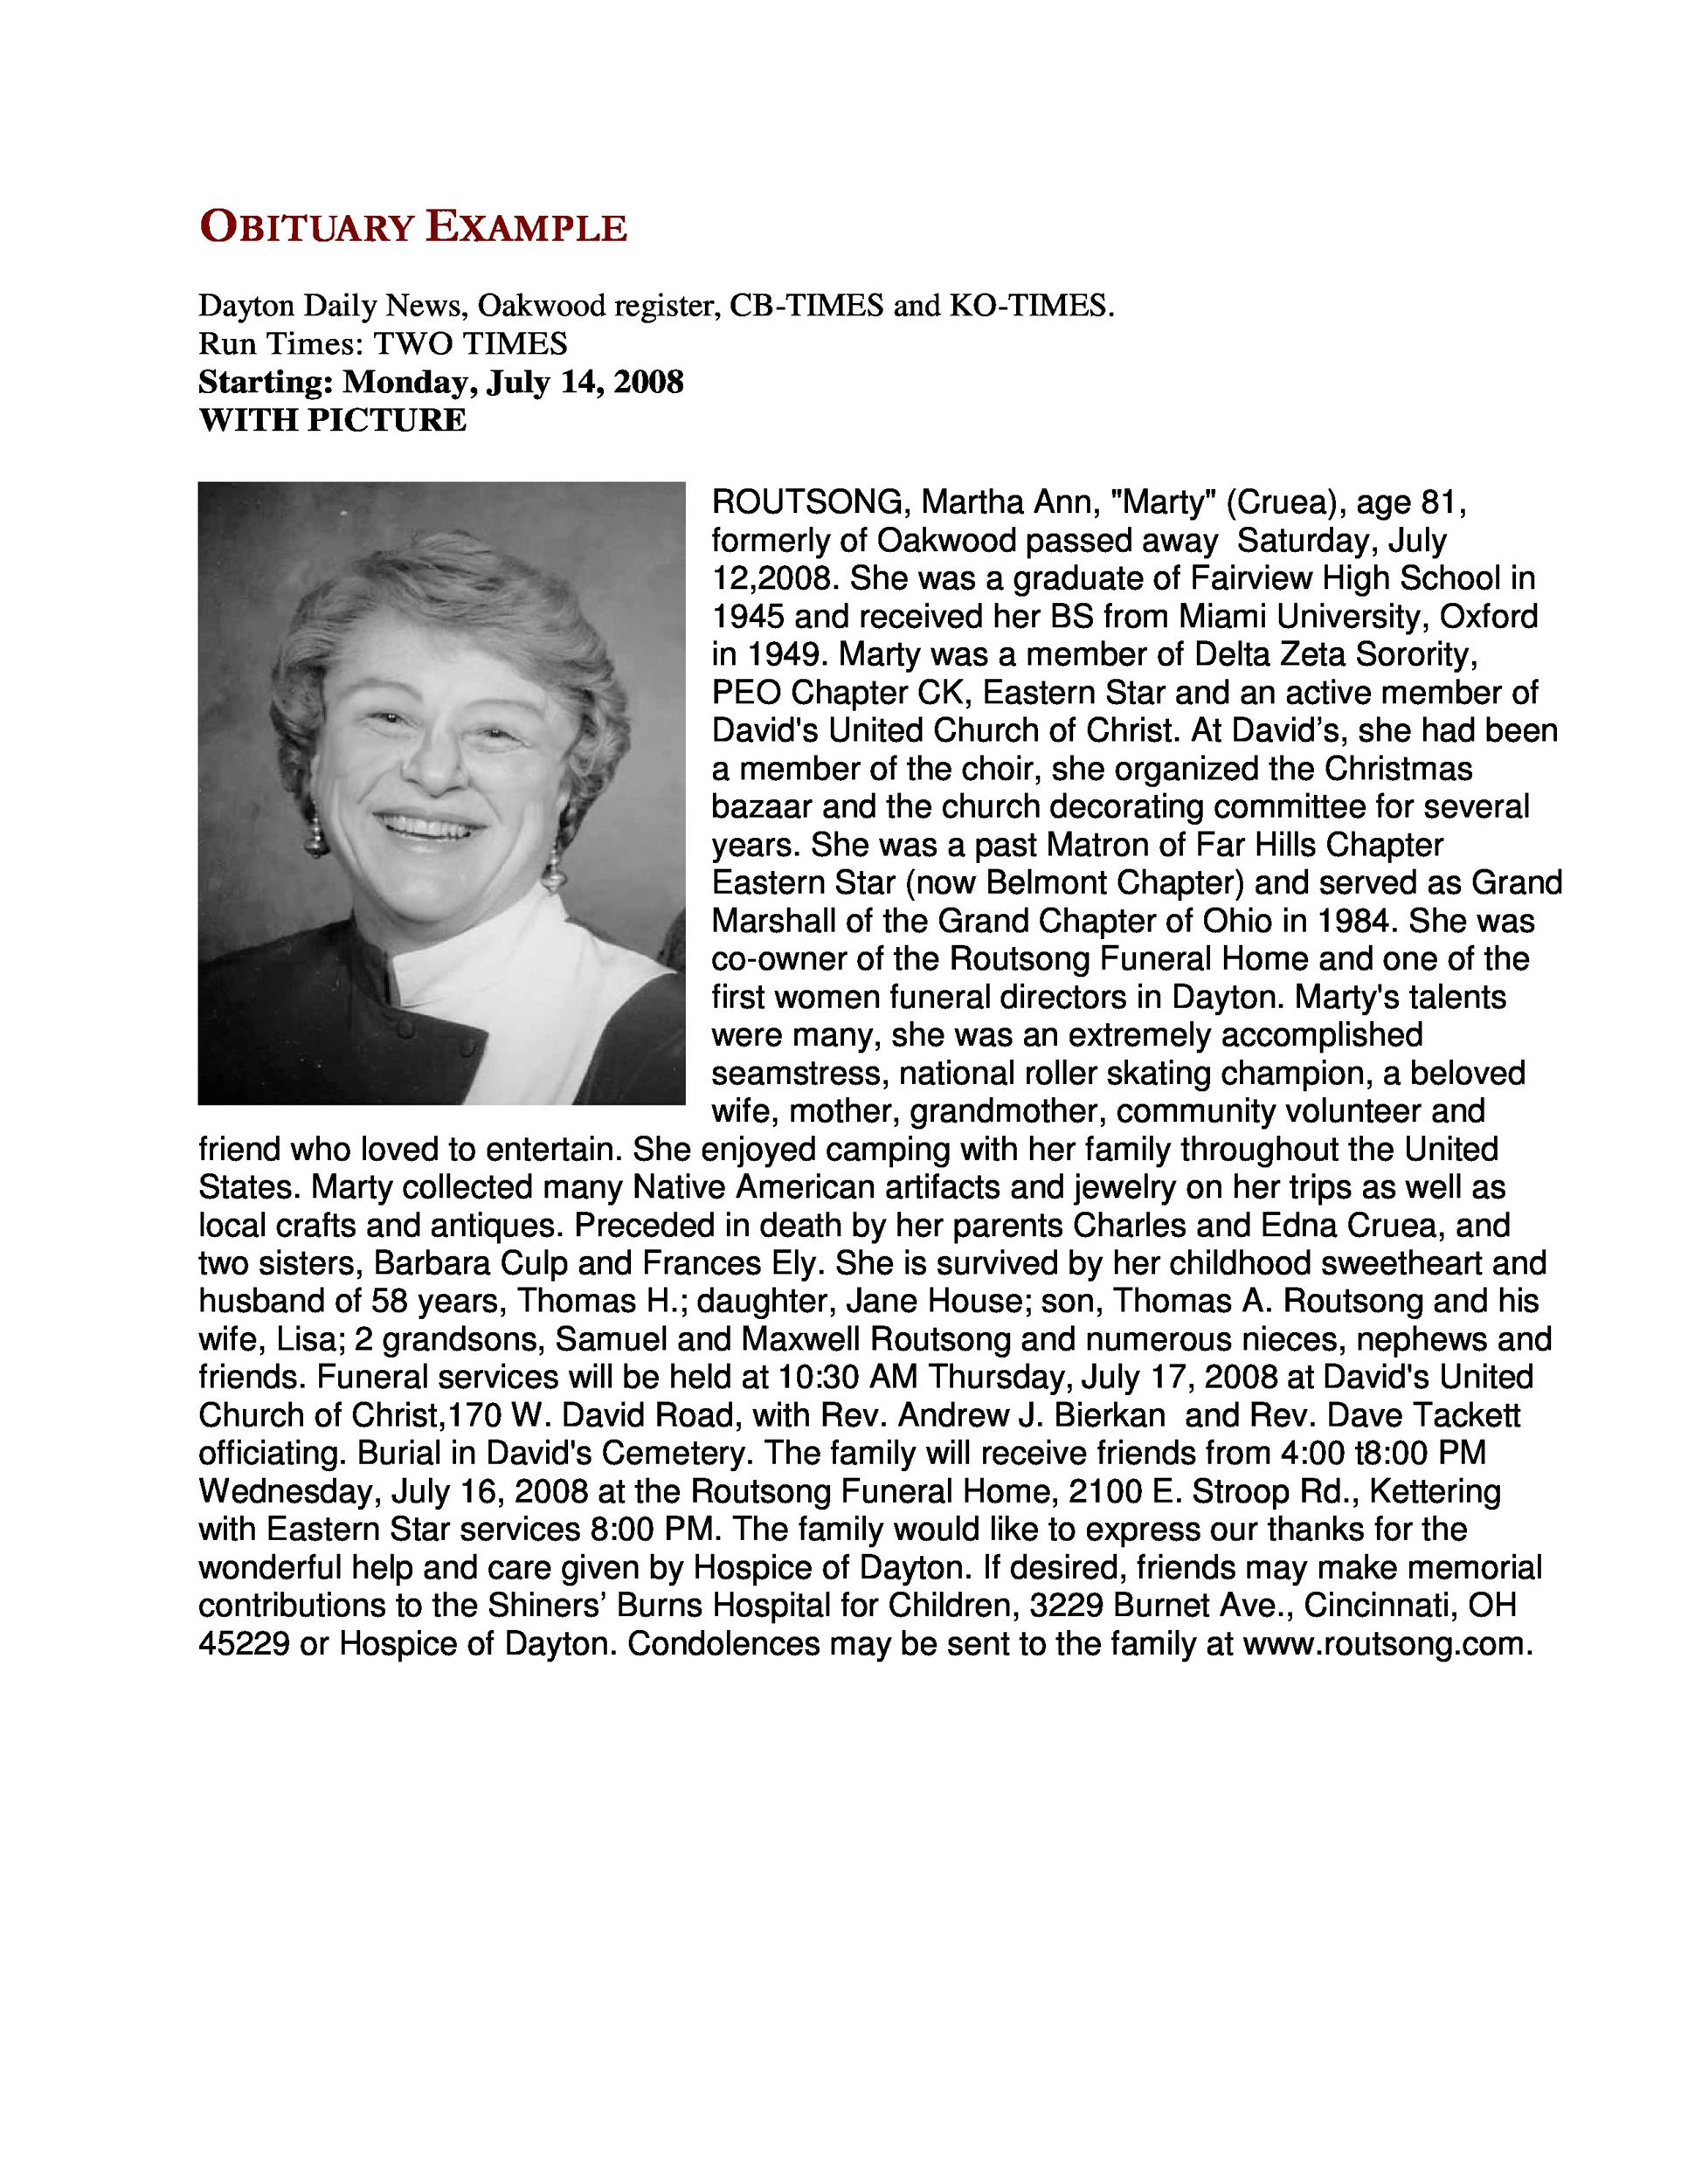 Free Obituary Example